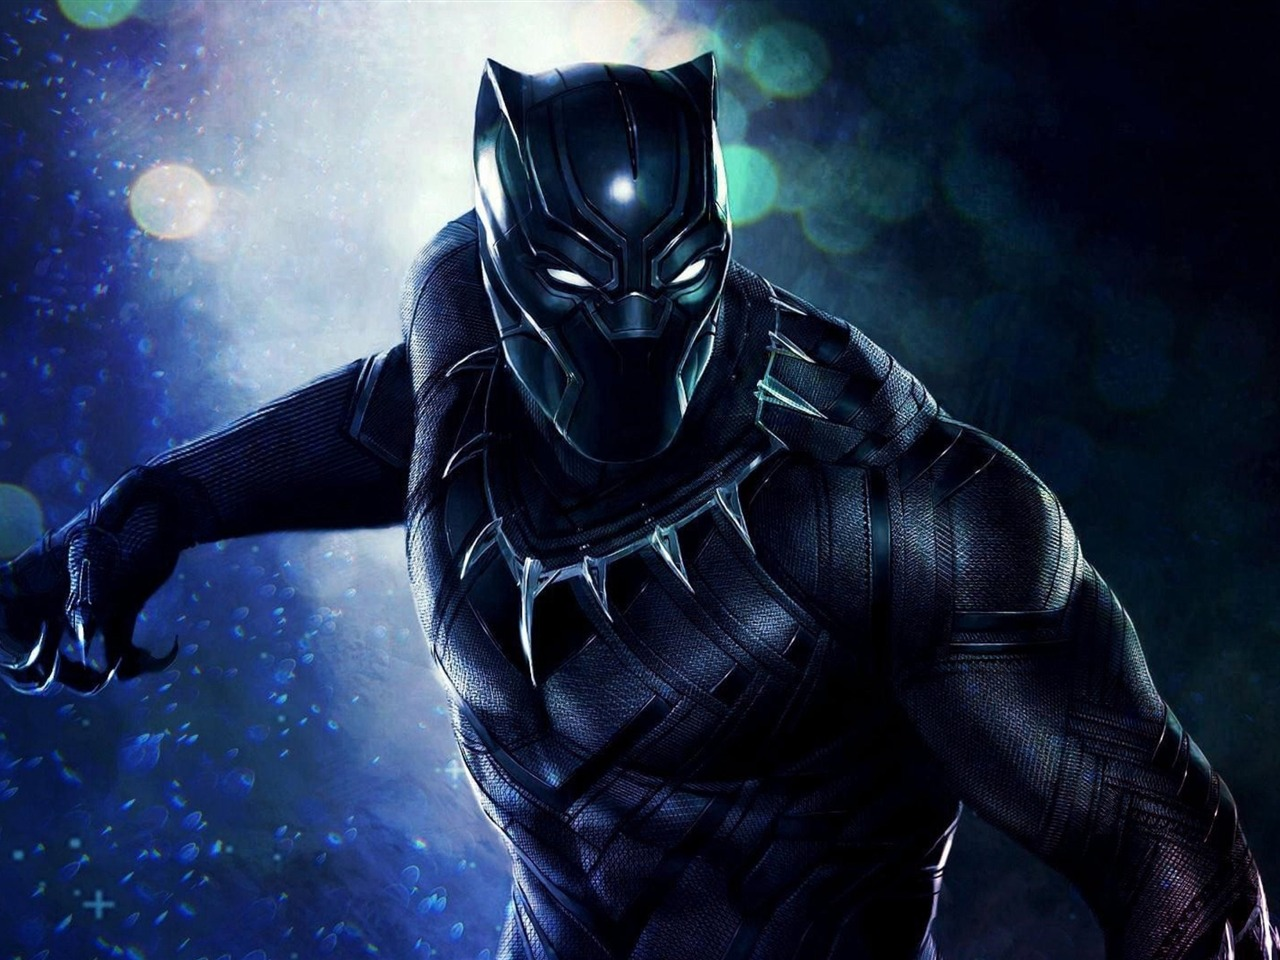 Papel De Parede De Filme Hd De Panther Artwork 2017 Visualizacao